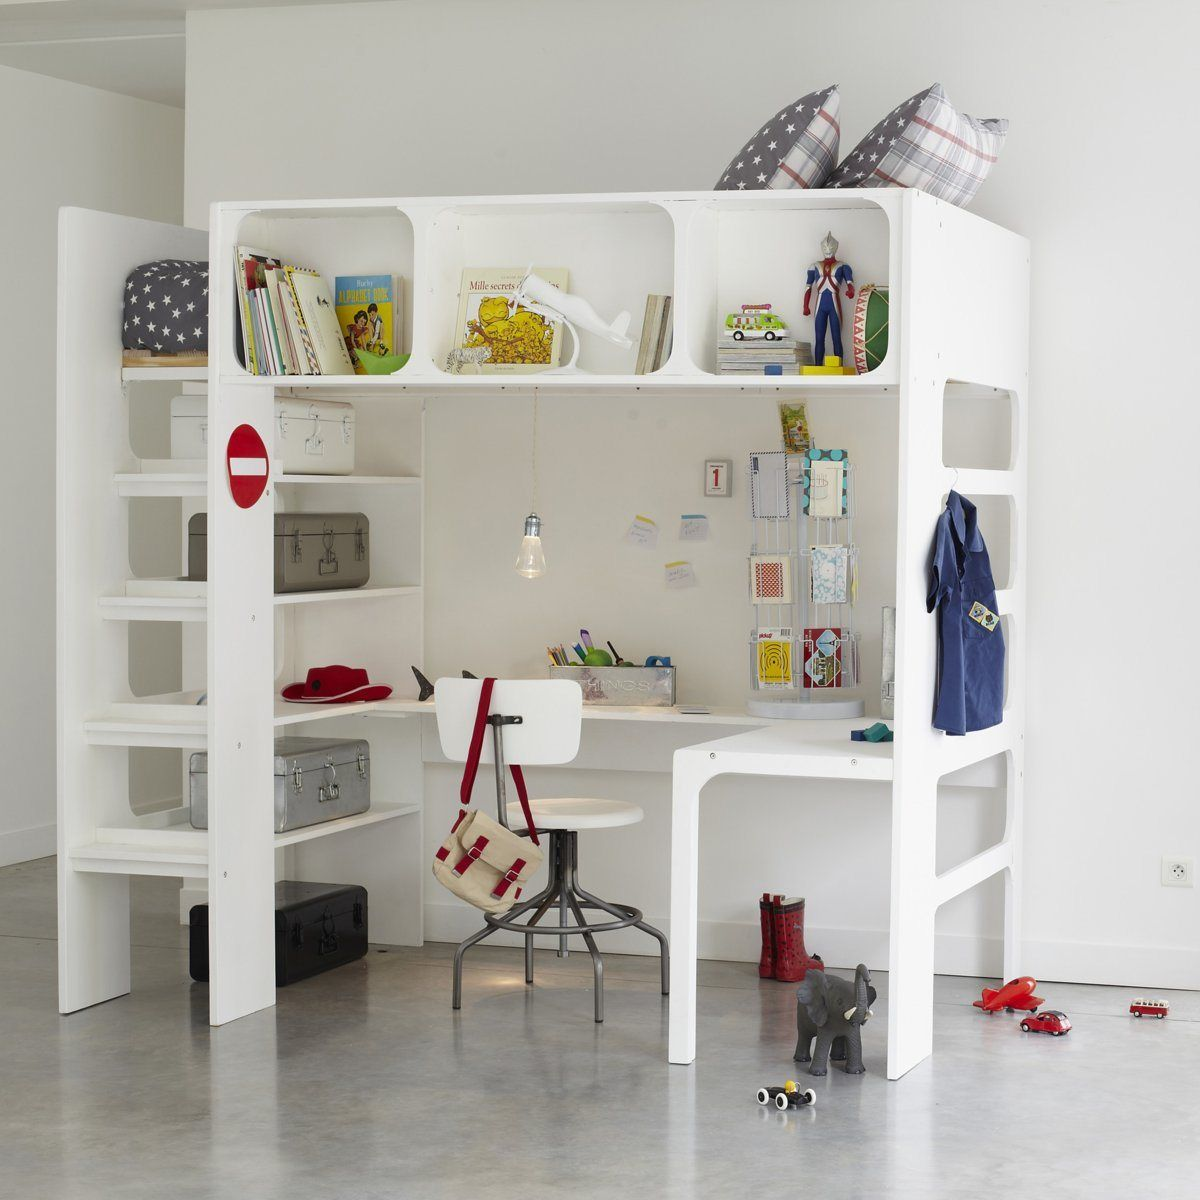 La redoute lit bureau et commode gain de place bcn amenagement int - Lit mezzanine garcon ...